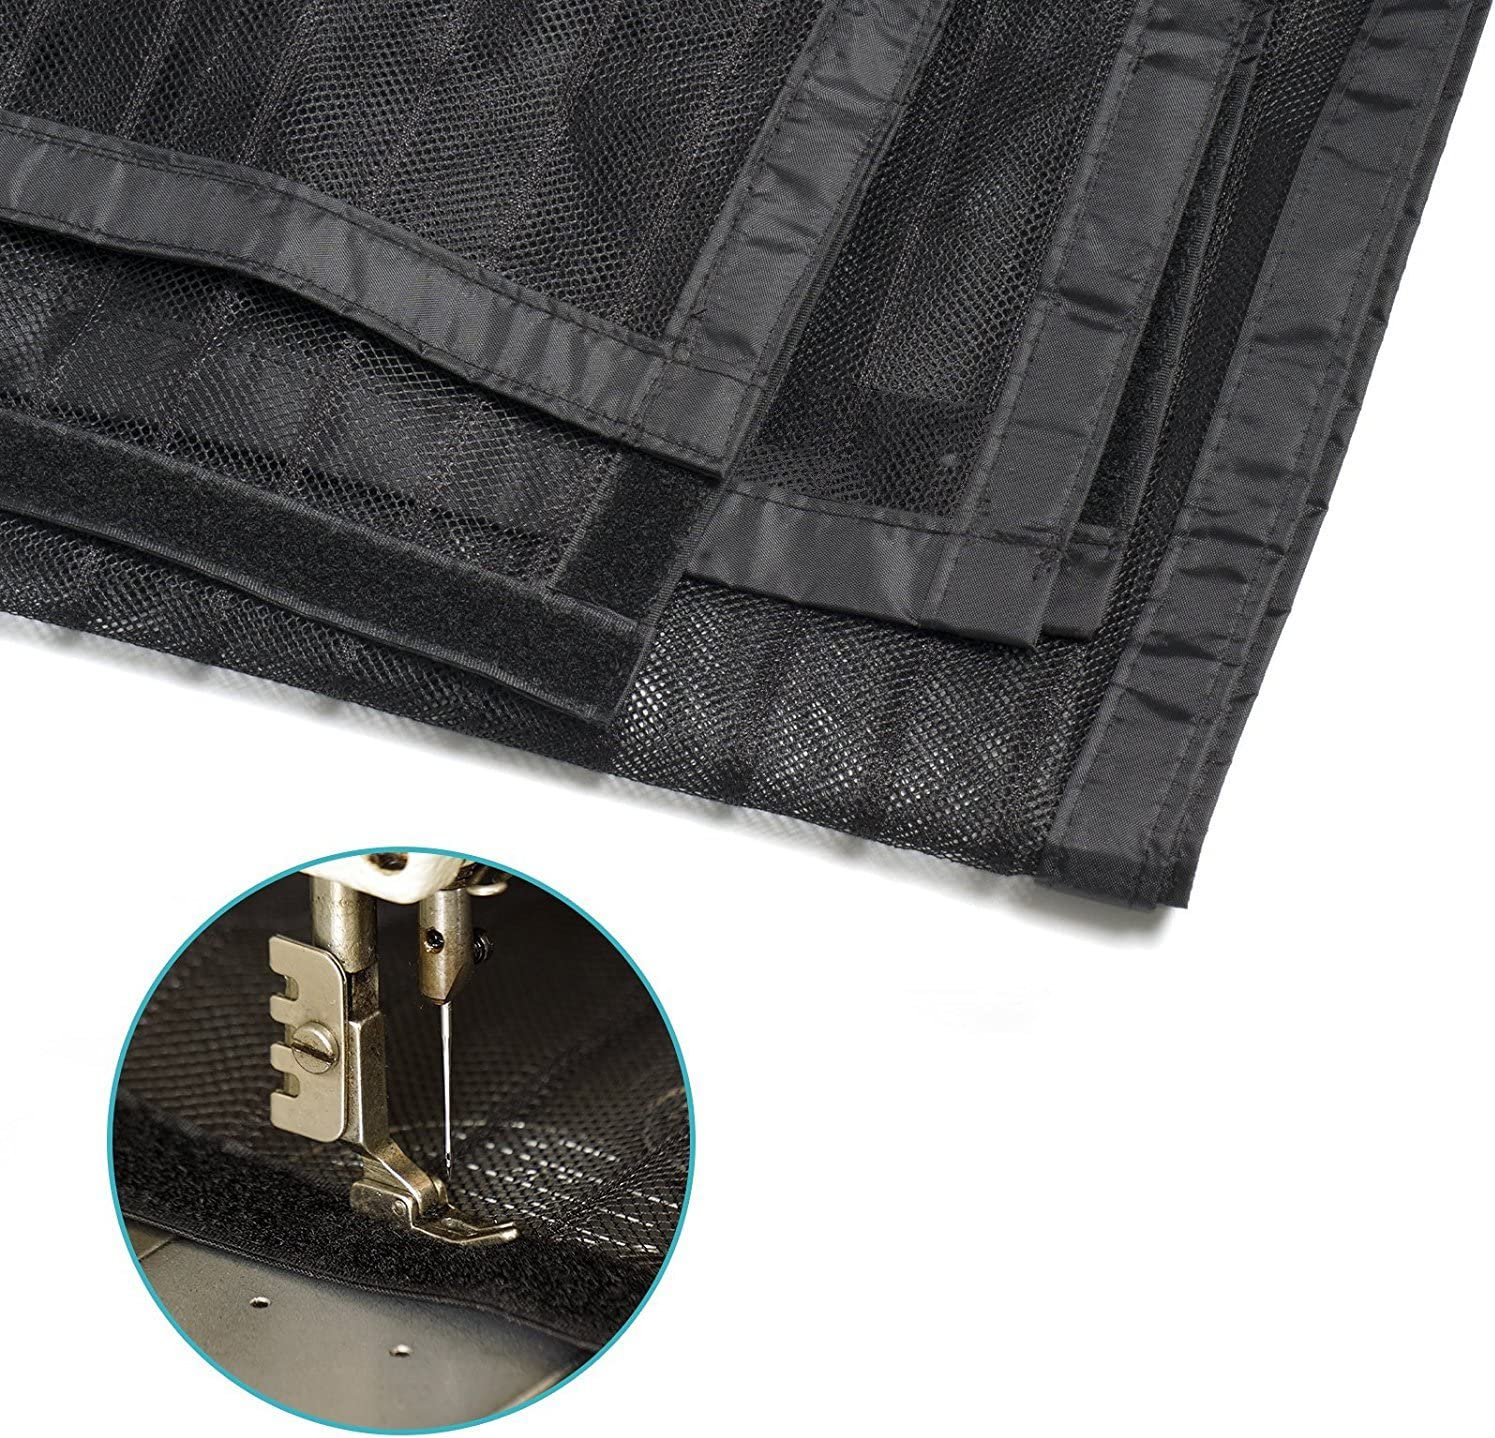 100x 210cm SIEGES Magnetic Screen Door Full Frame Velcro Magic Mesh Screen Net Anti-mosquito Curtain Insect Mosquito Bug Mesh Black